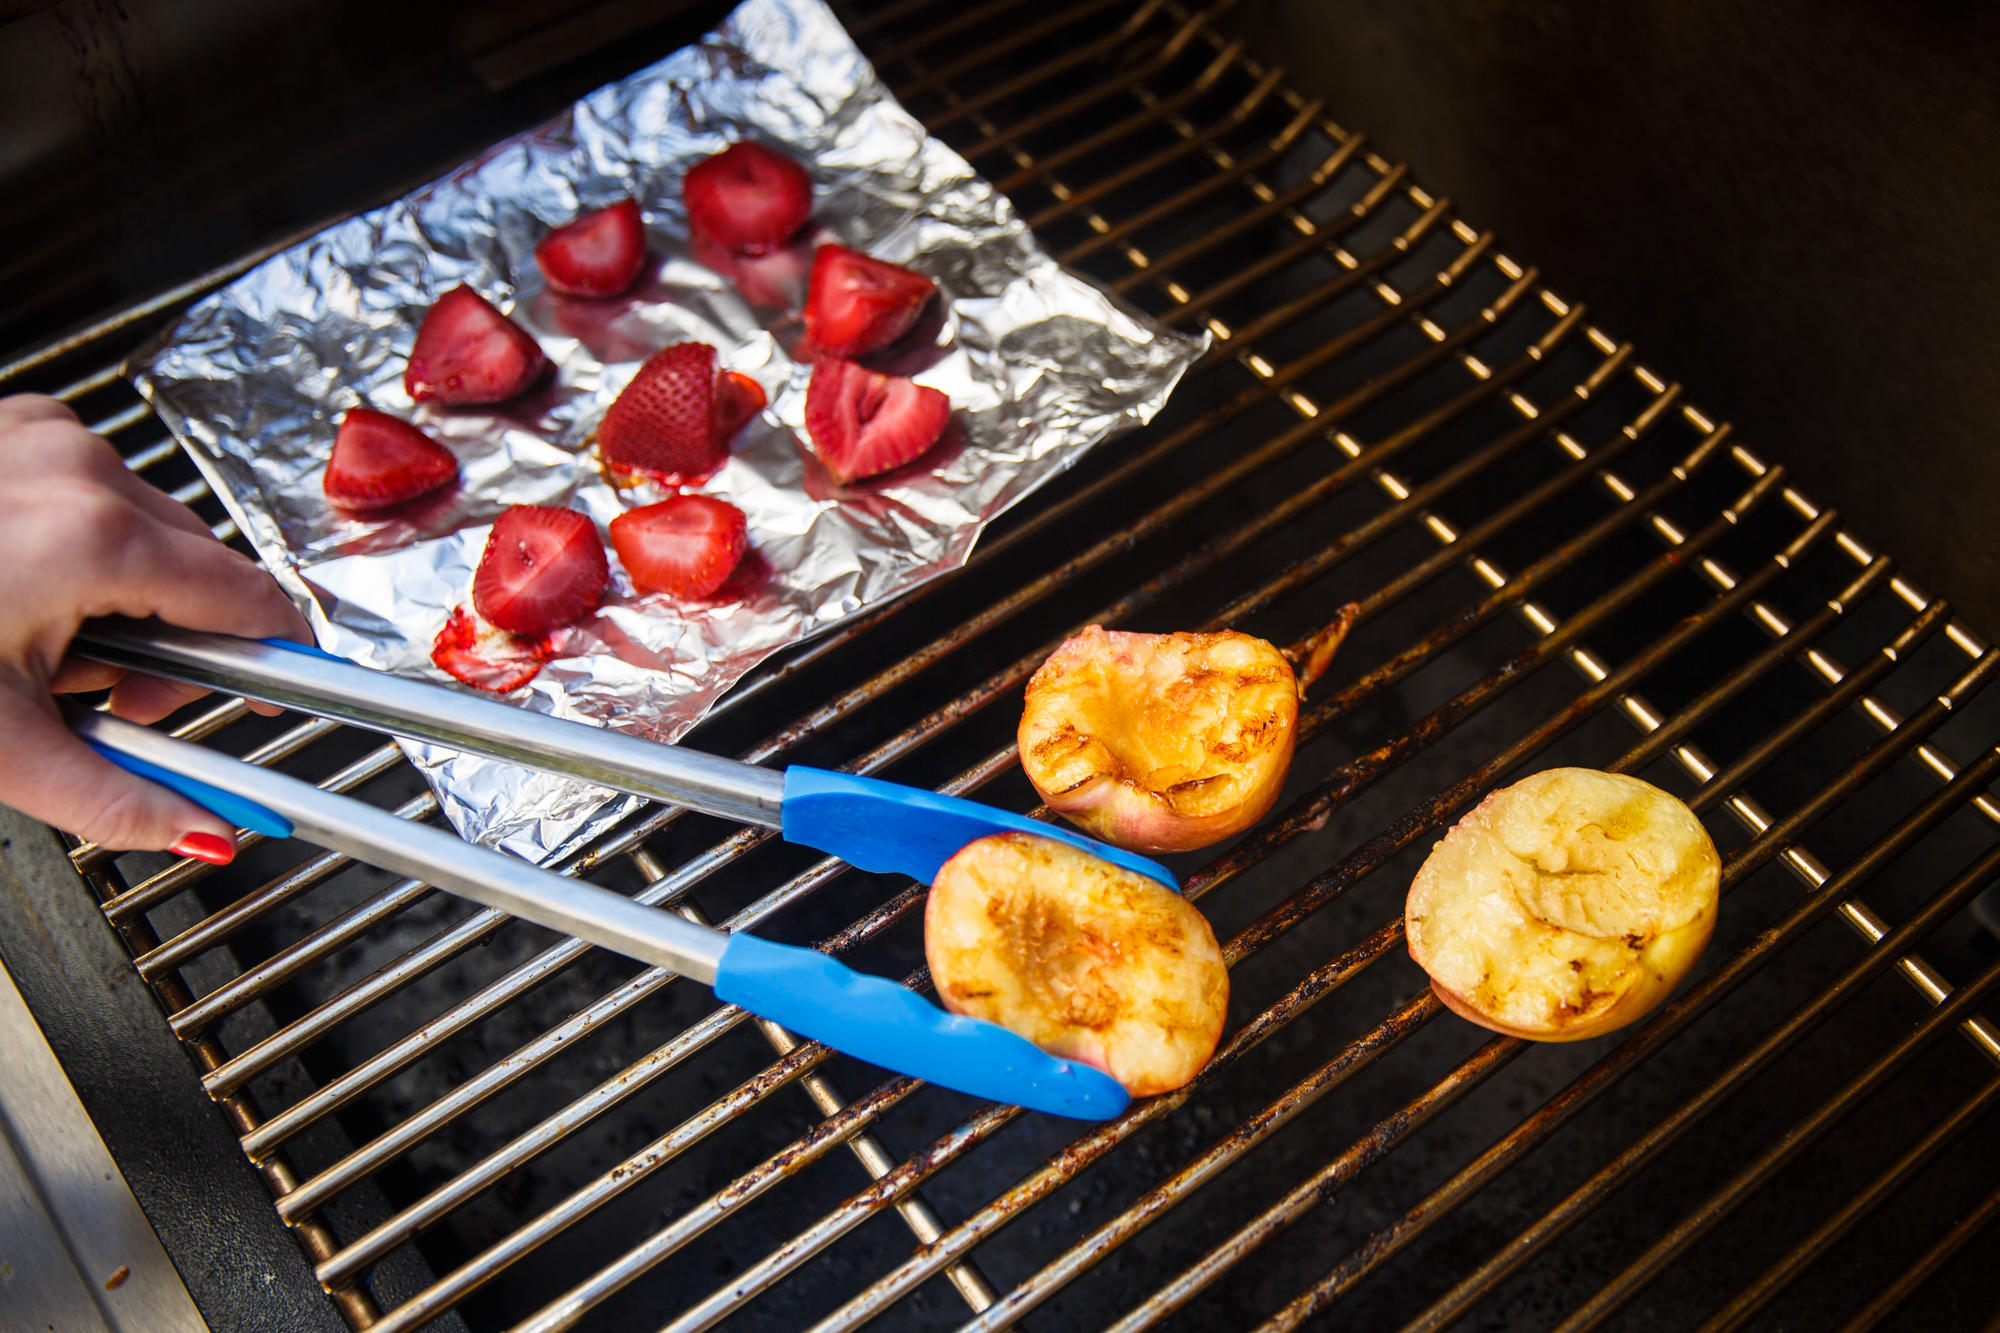 grilling-4x3-cnet-smart-home-9104-011